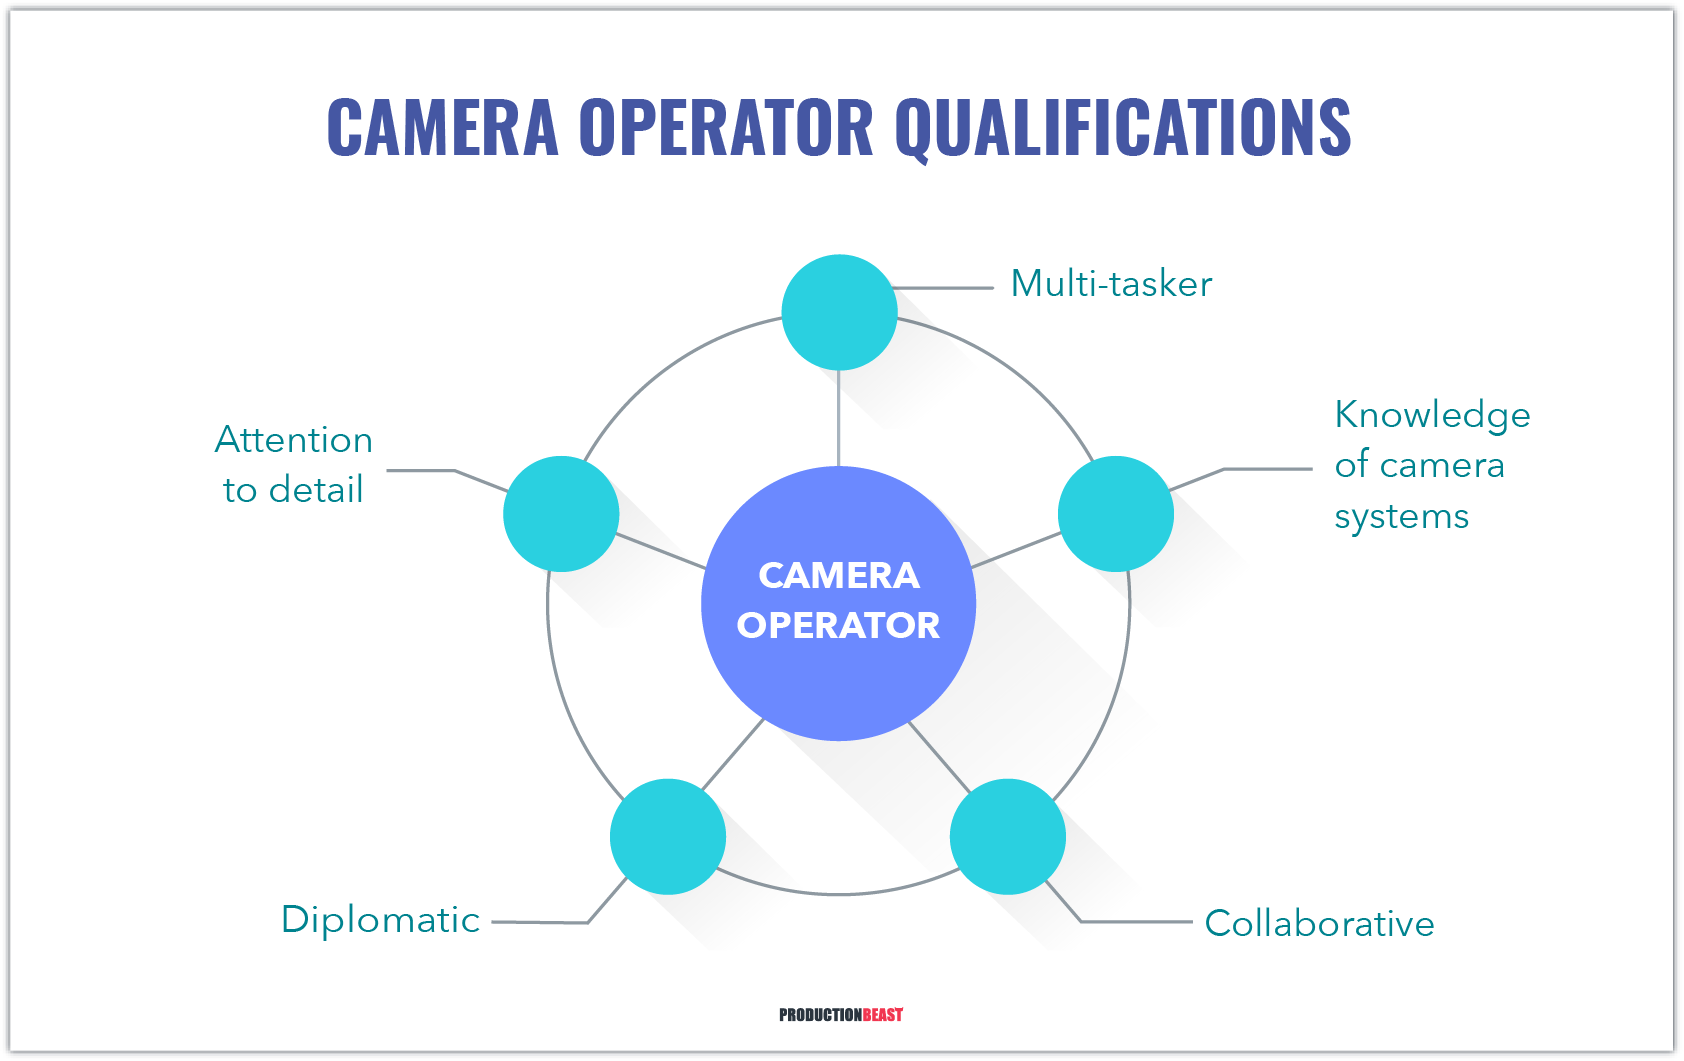 Guide To Becoming A Camera Operator - The Path To Camera Operator - ProductionBeast